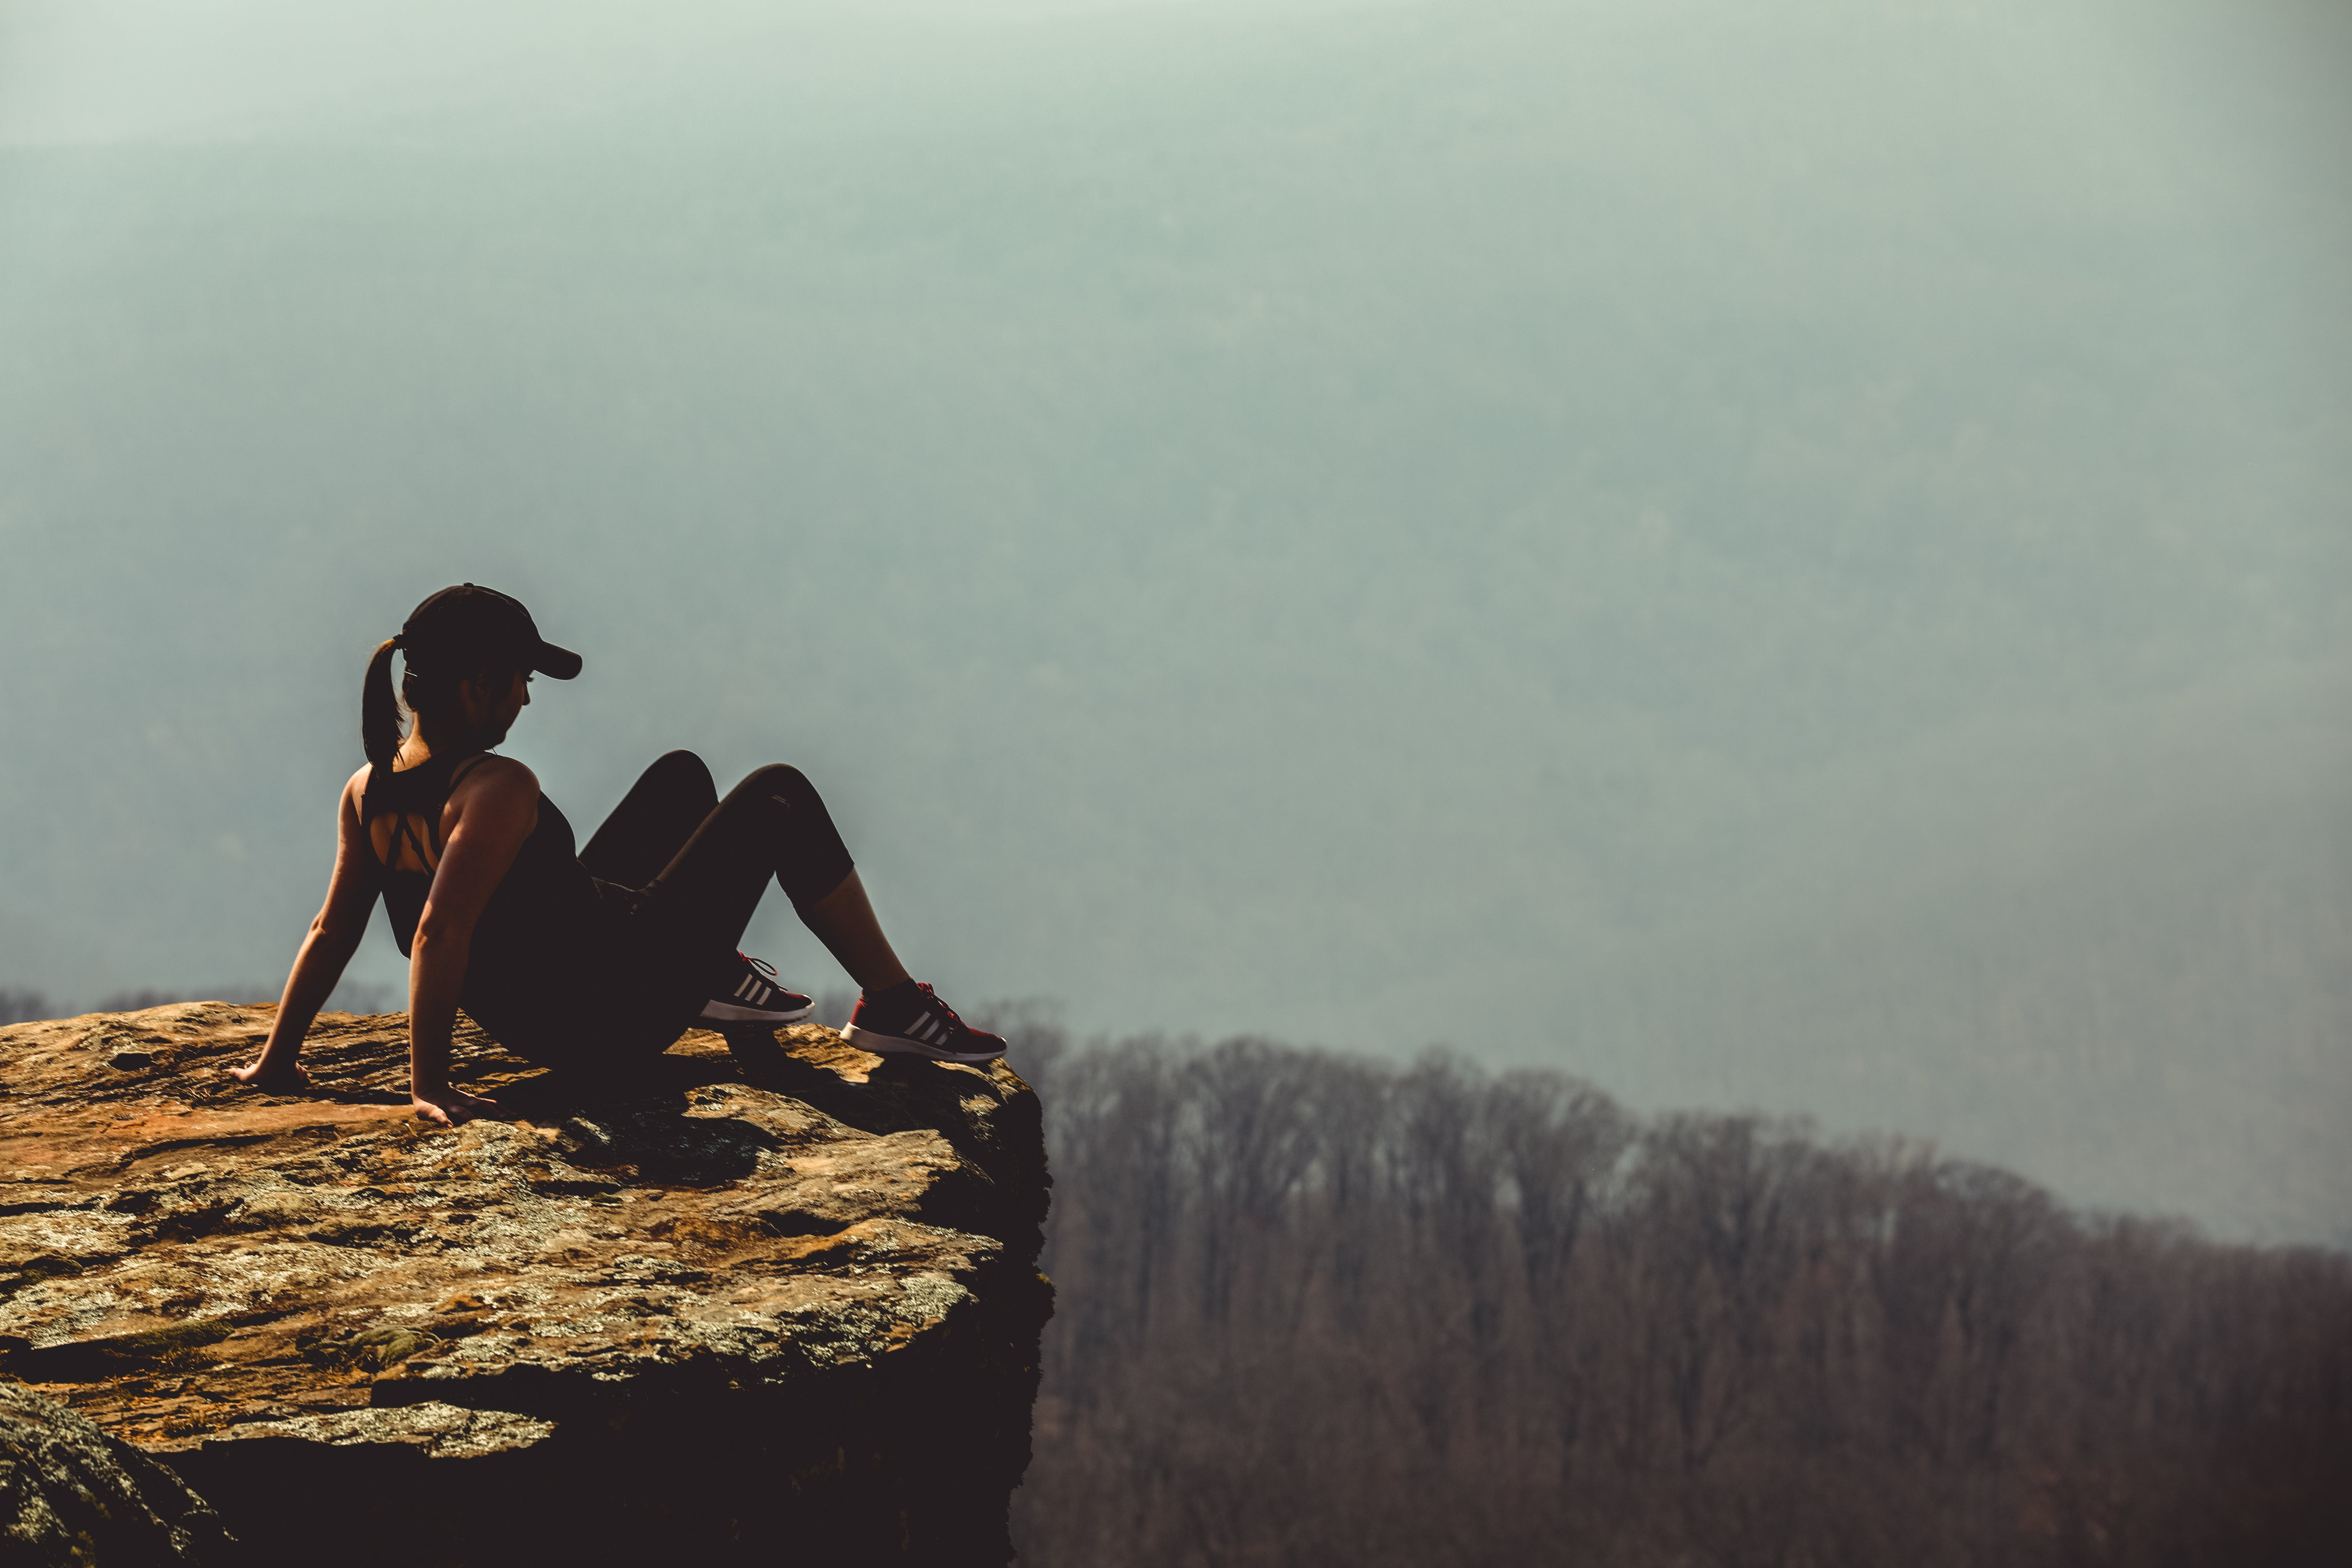 Shallow Focus Photography of Woman on Rock Formation